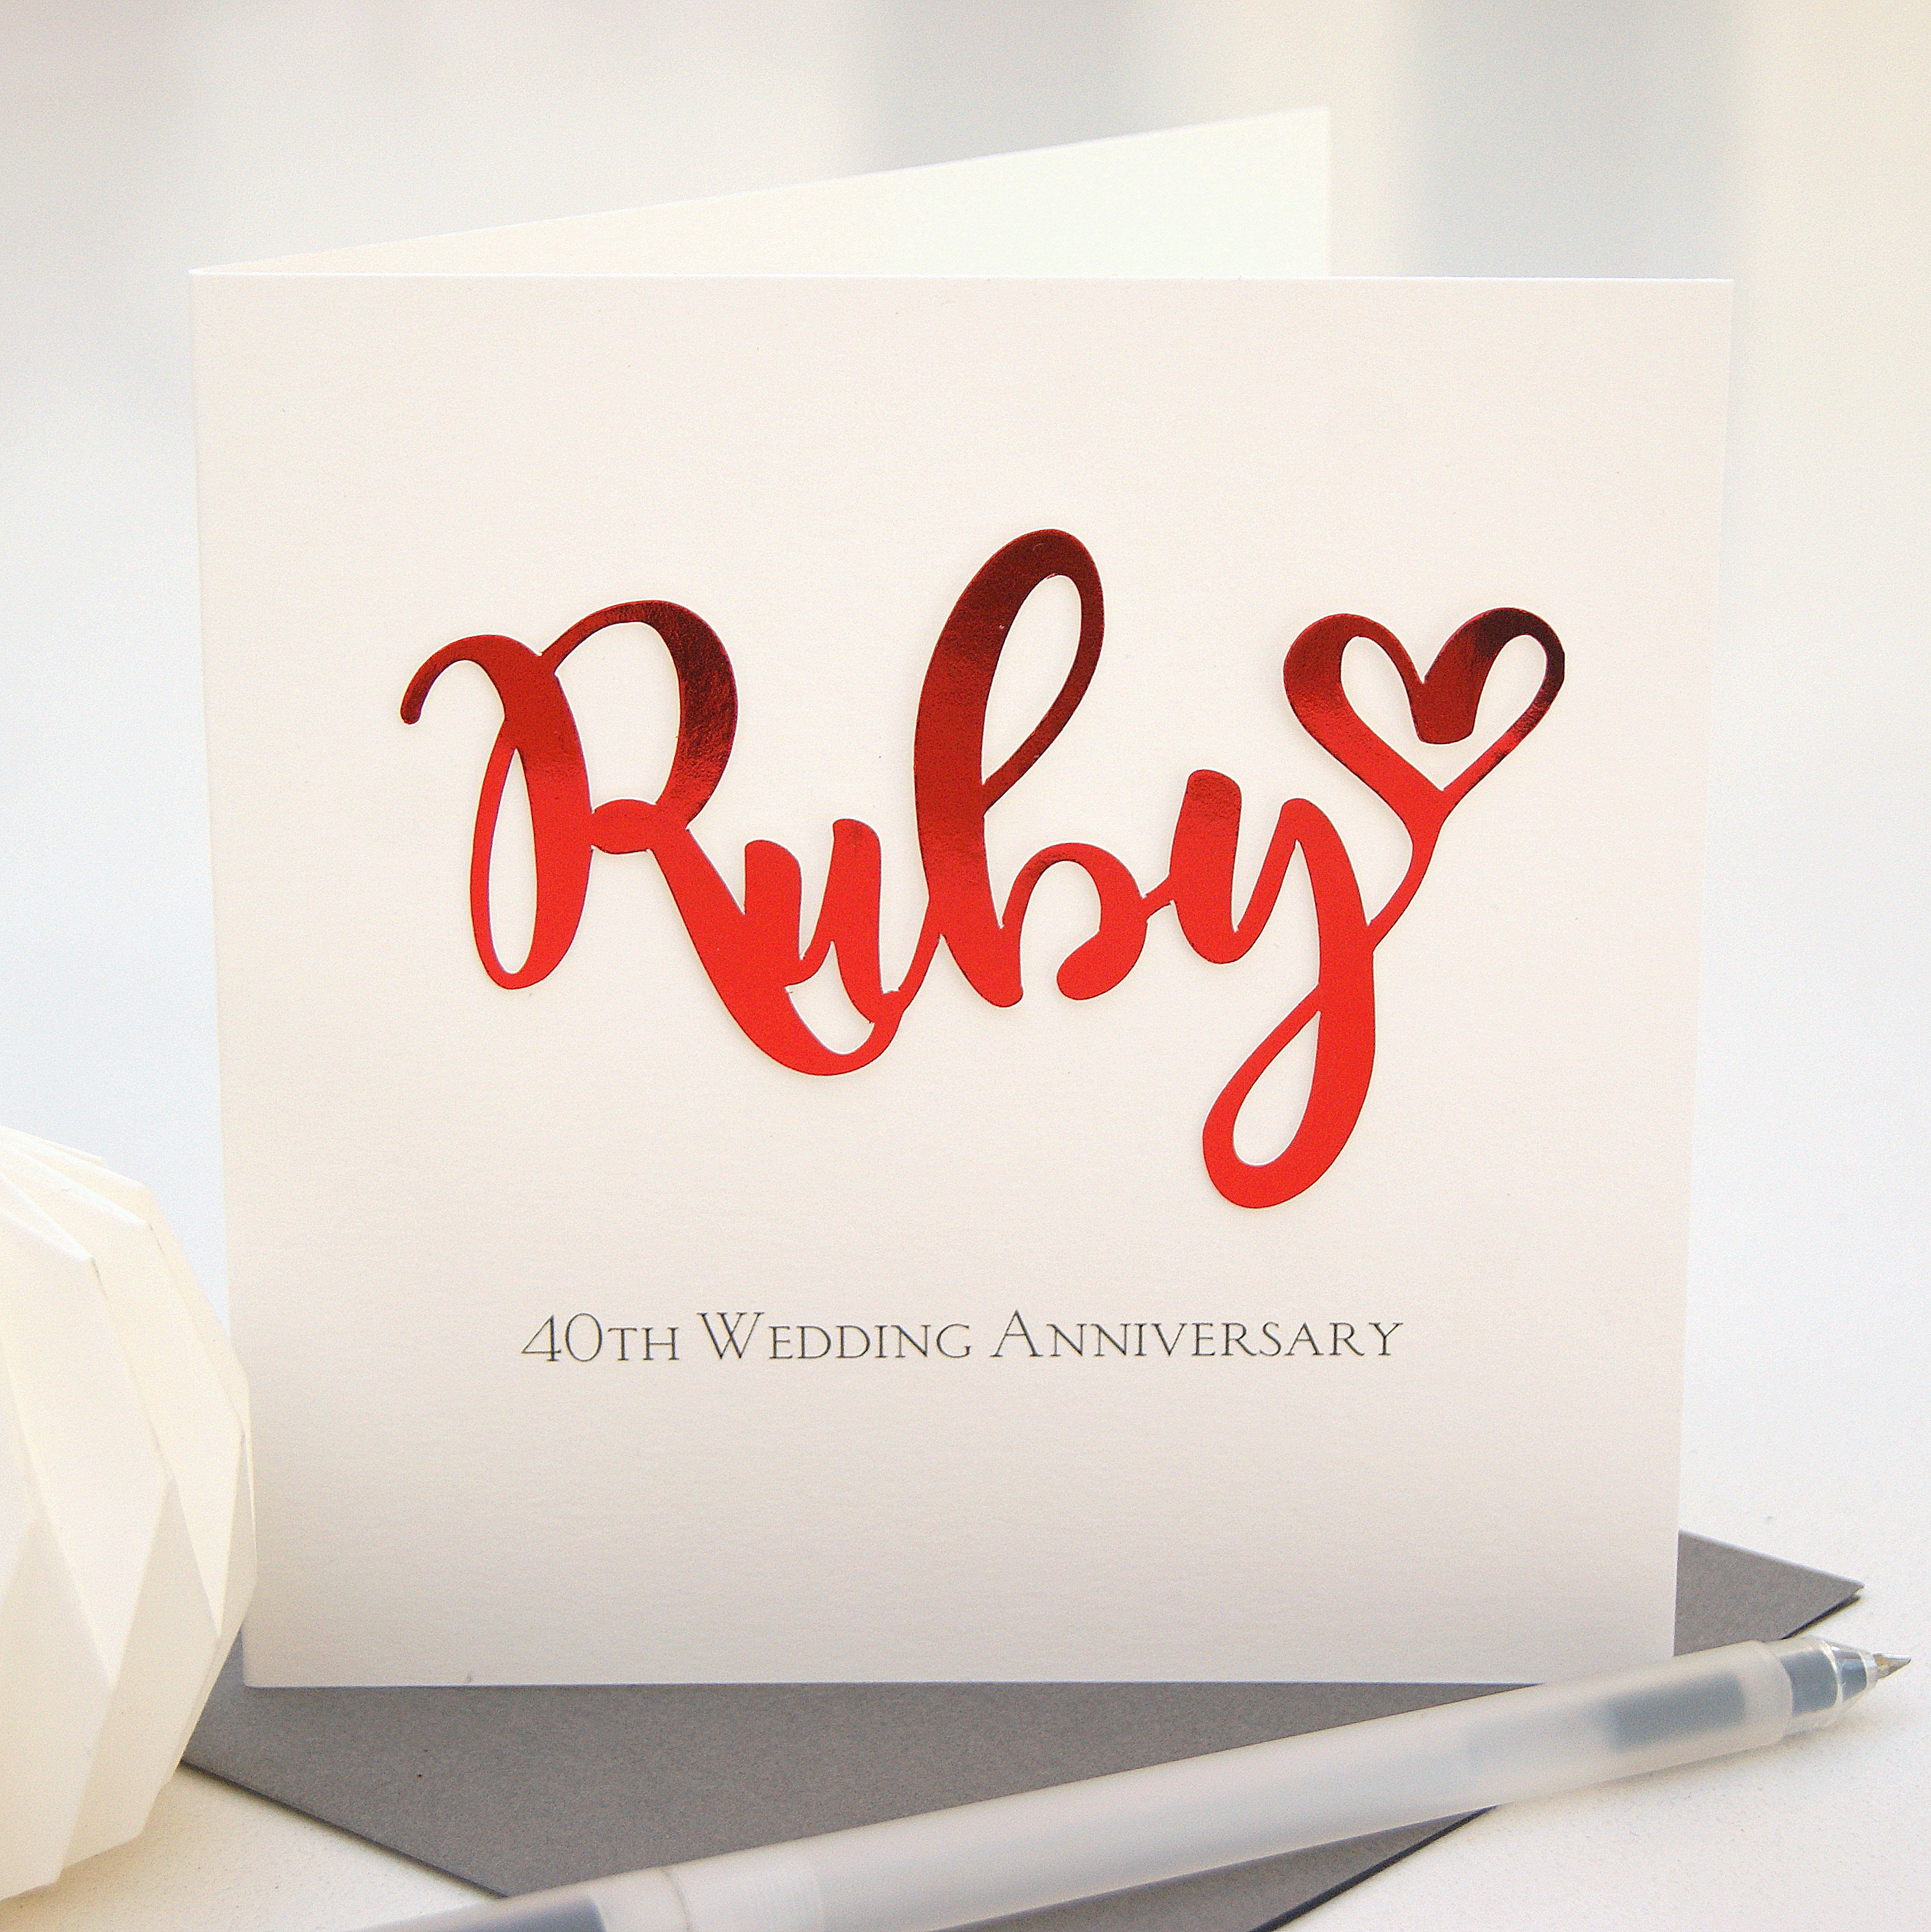 ruby 40th wedding anniversary card - Wedding Anniversary Cards